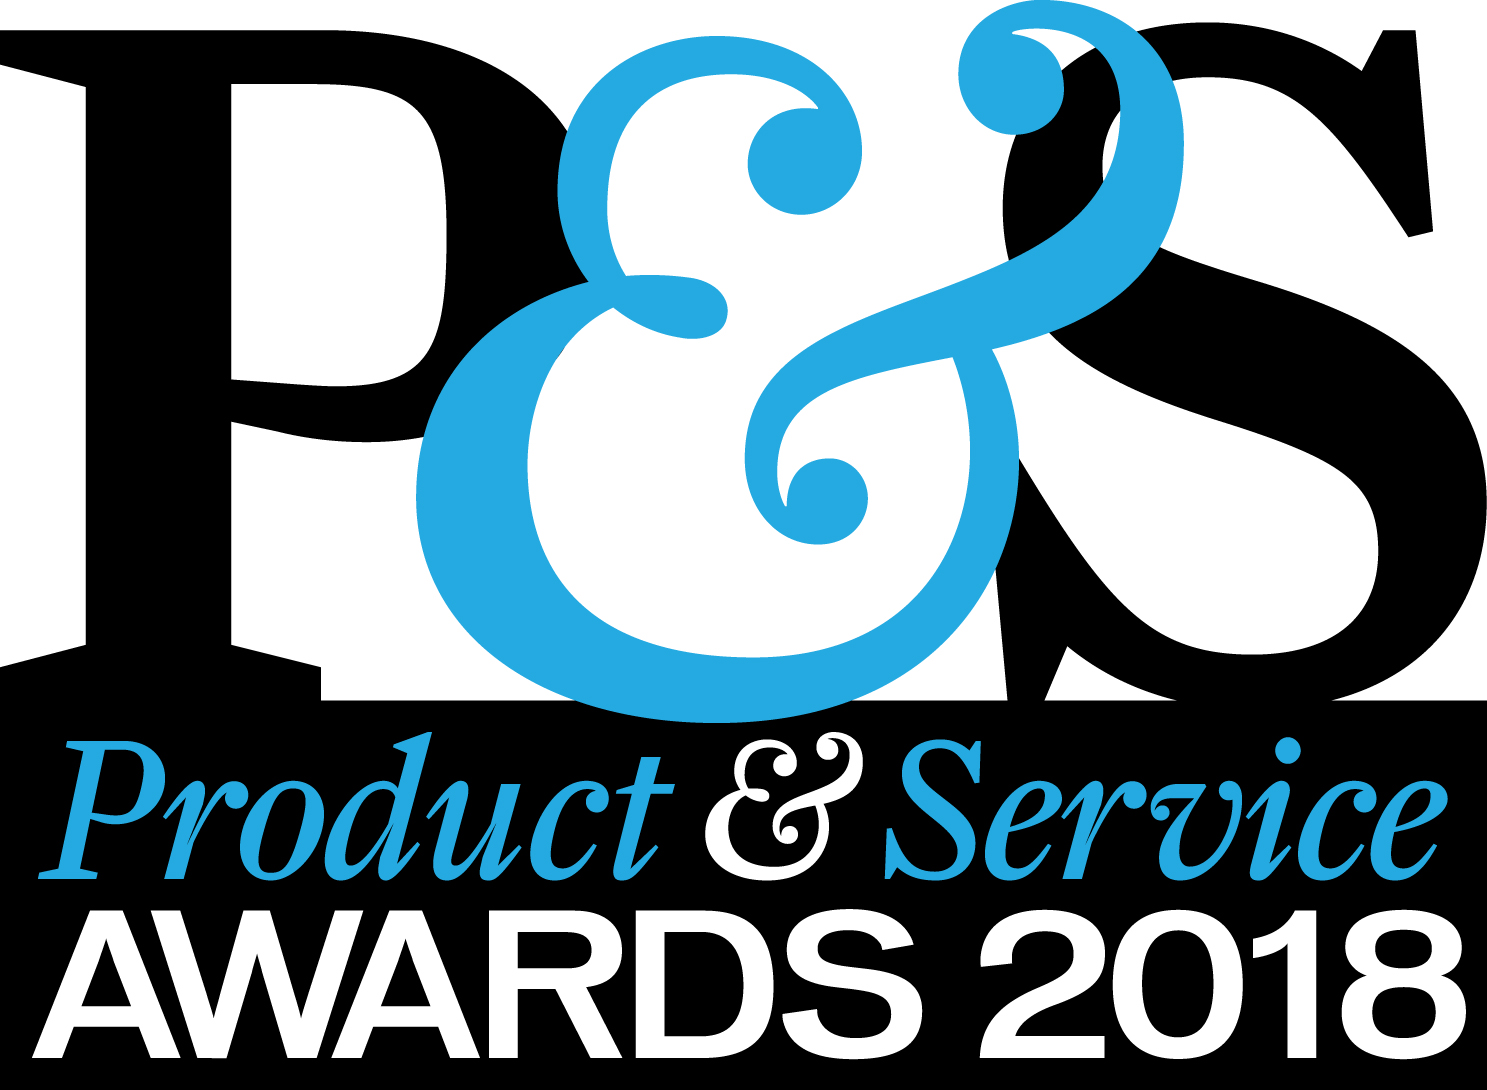 PS Awards logo 2018